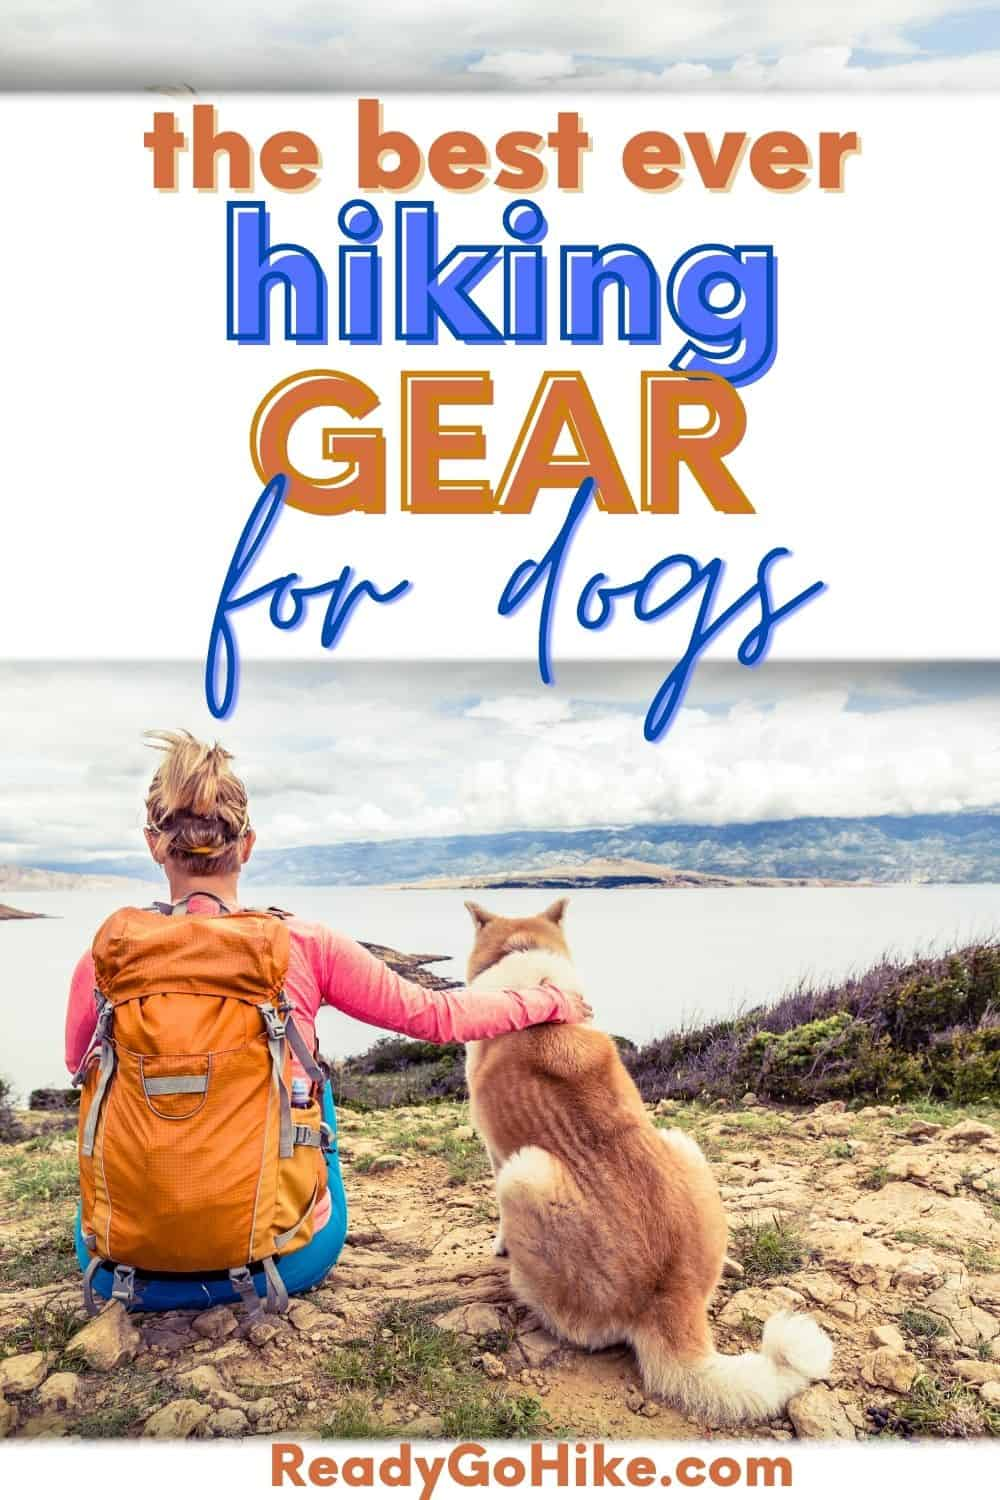 Picture of hiker with dog looking at sea with text overlay The Best Ever Hiking Gear for Dogs